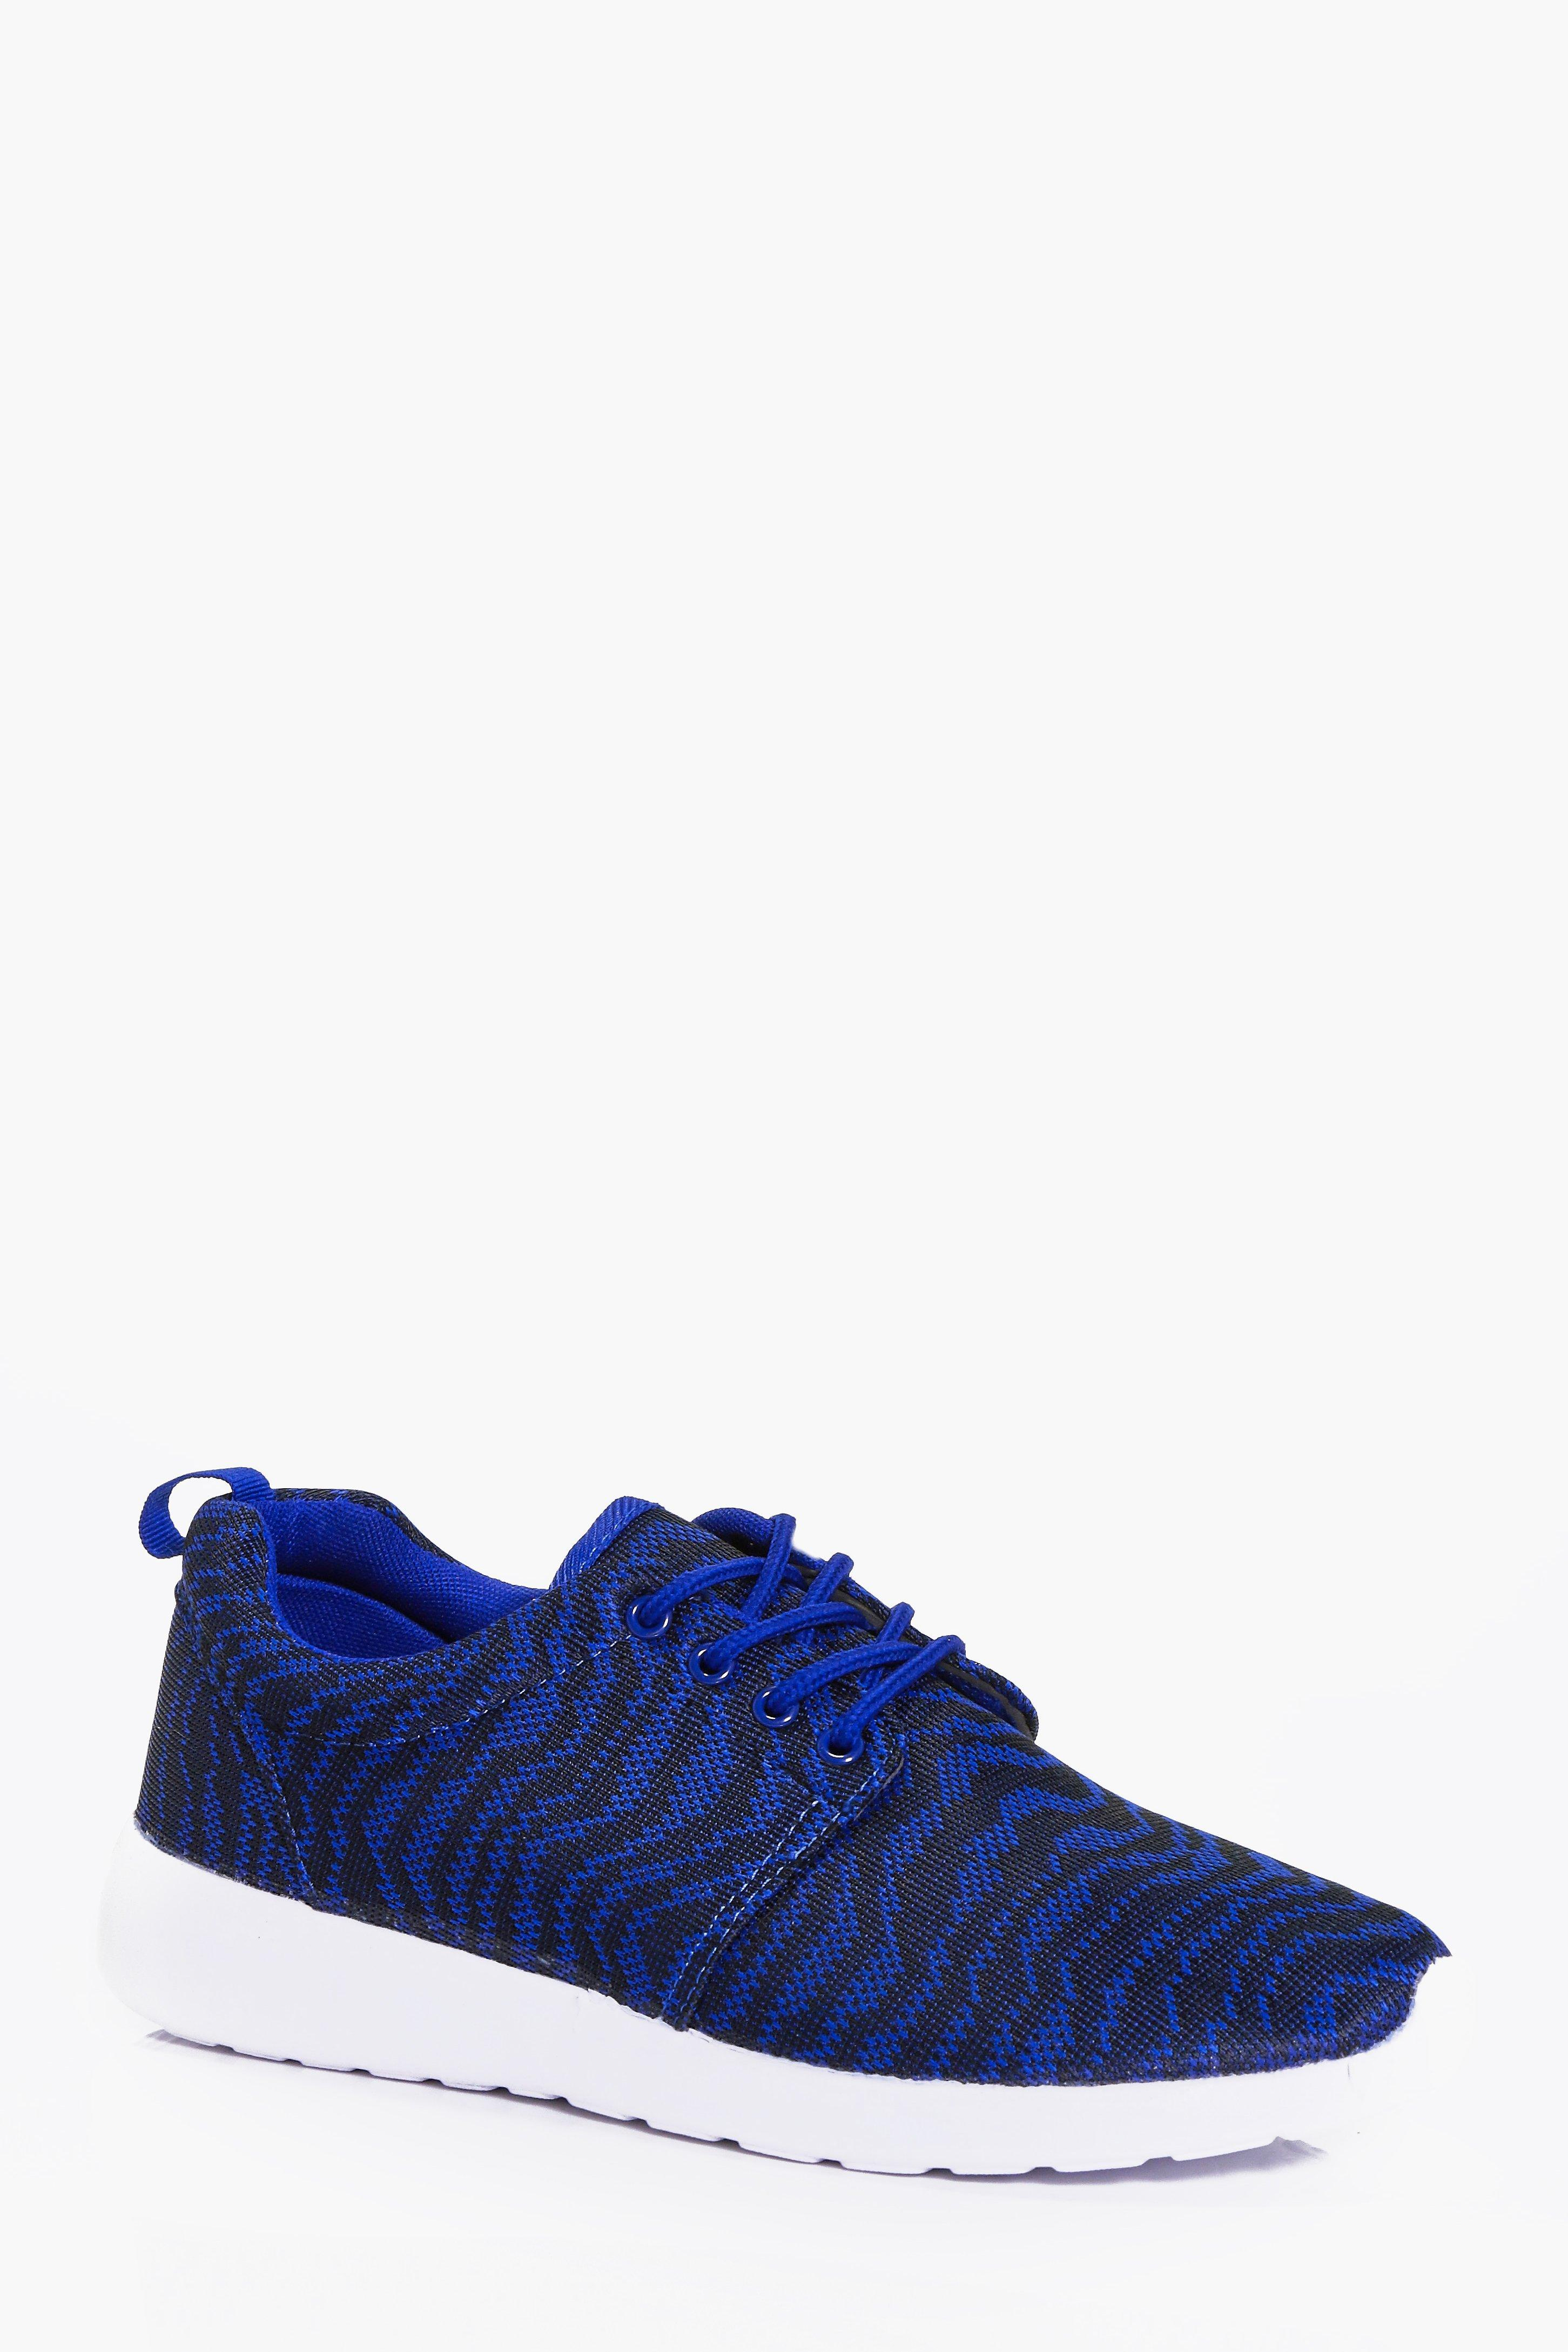 Product photo of Knit running trainers blue